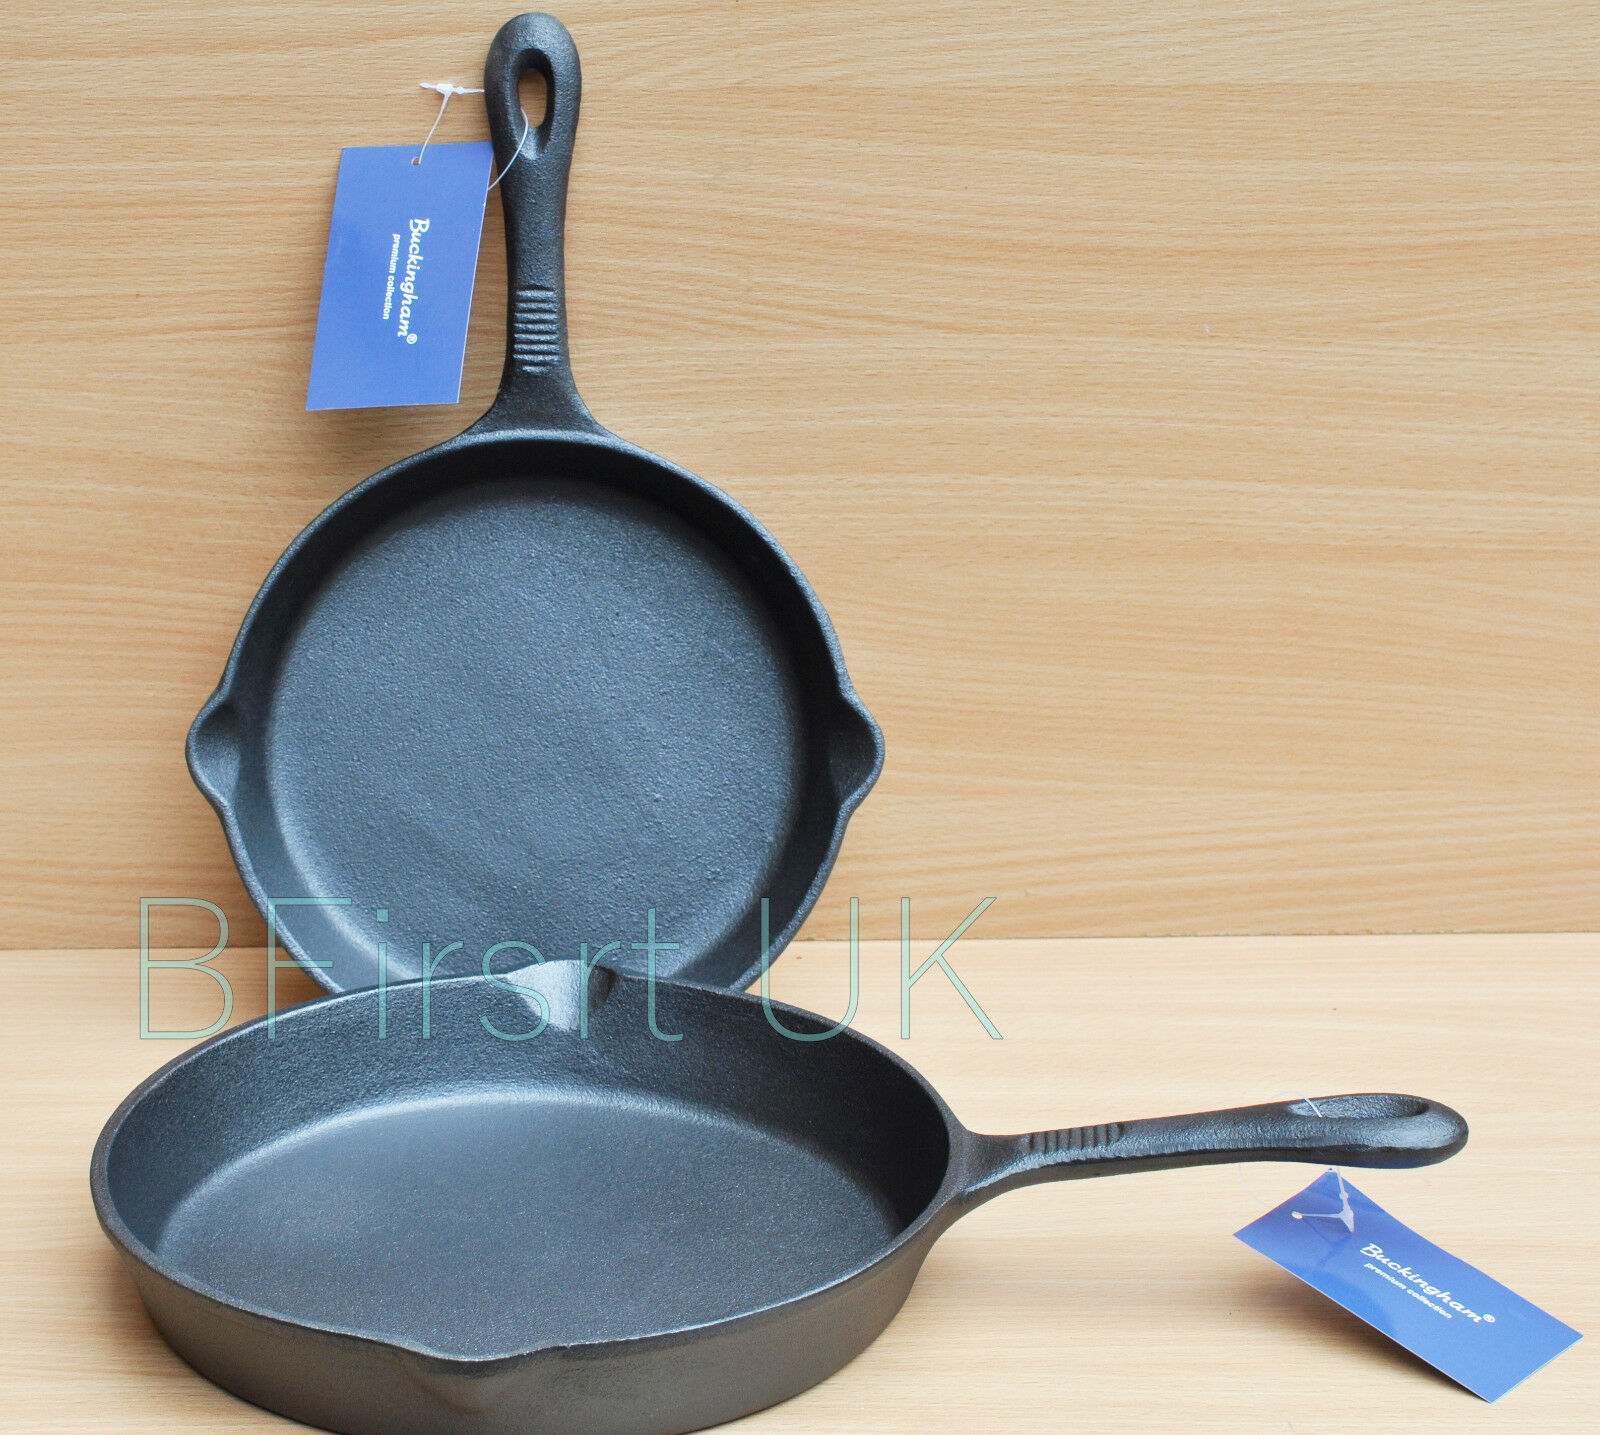 Ovenproof Frying Pan Induction Cast Iron Grill Fry Frying Pan Skillet Oven